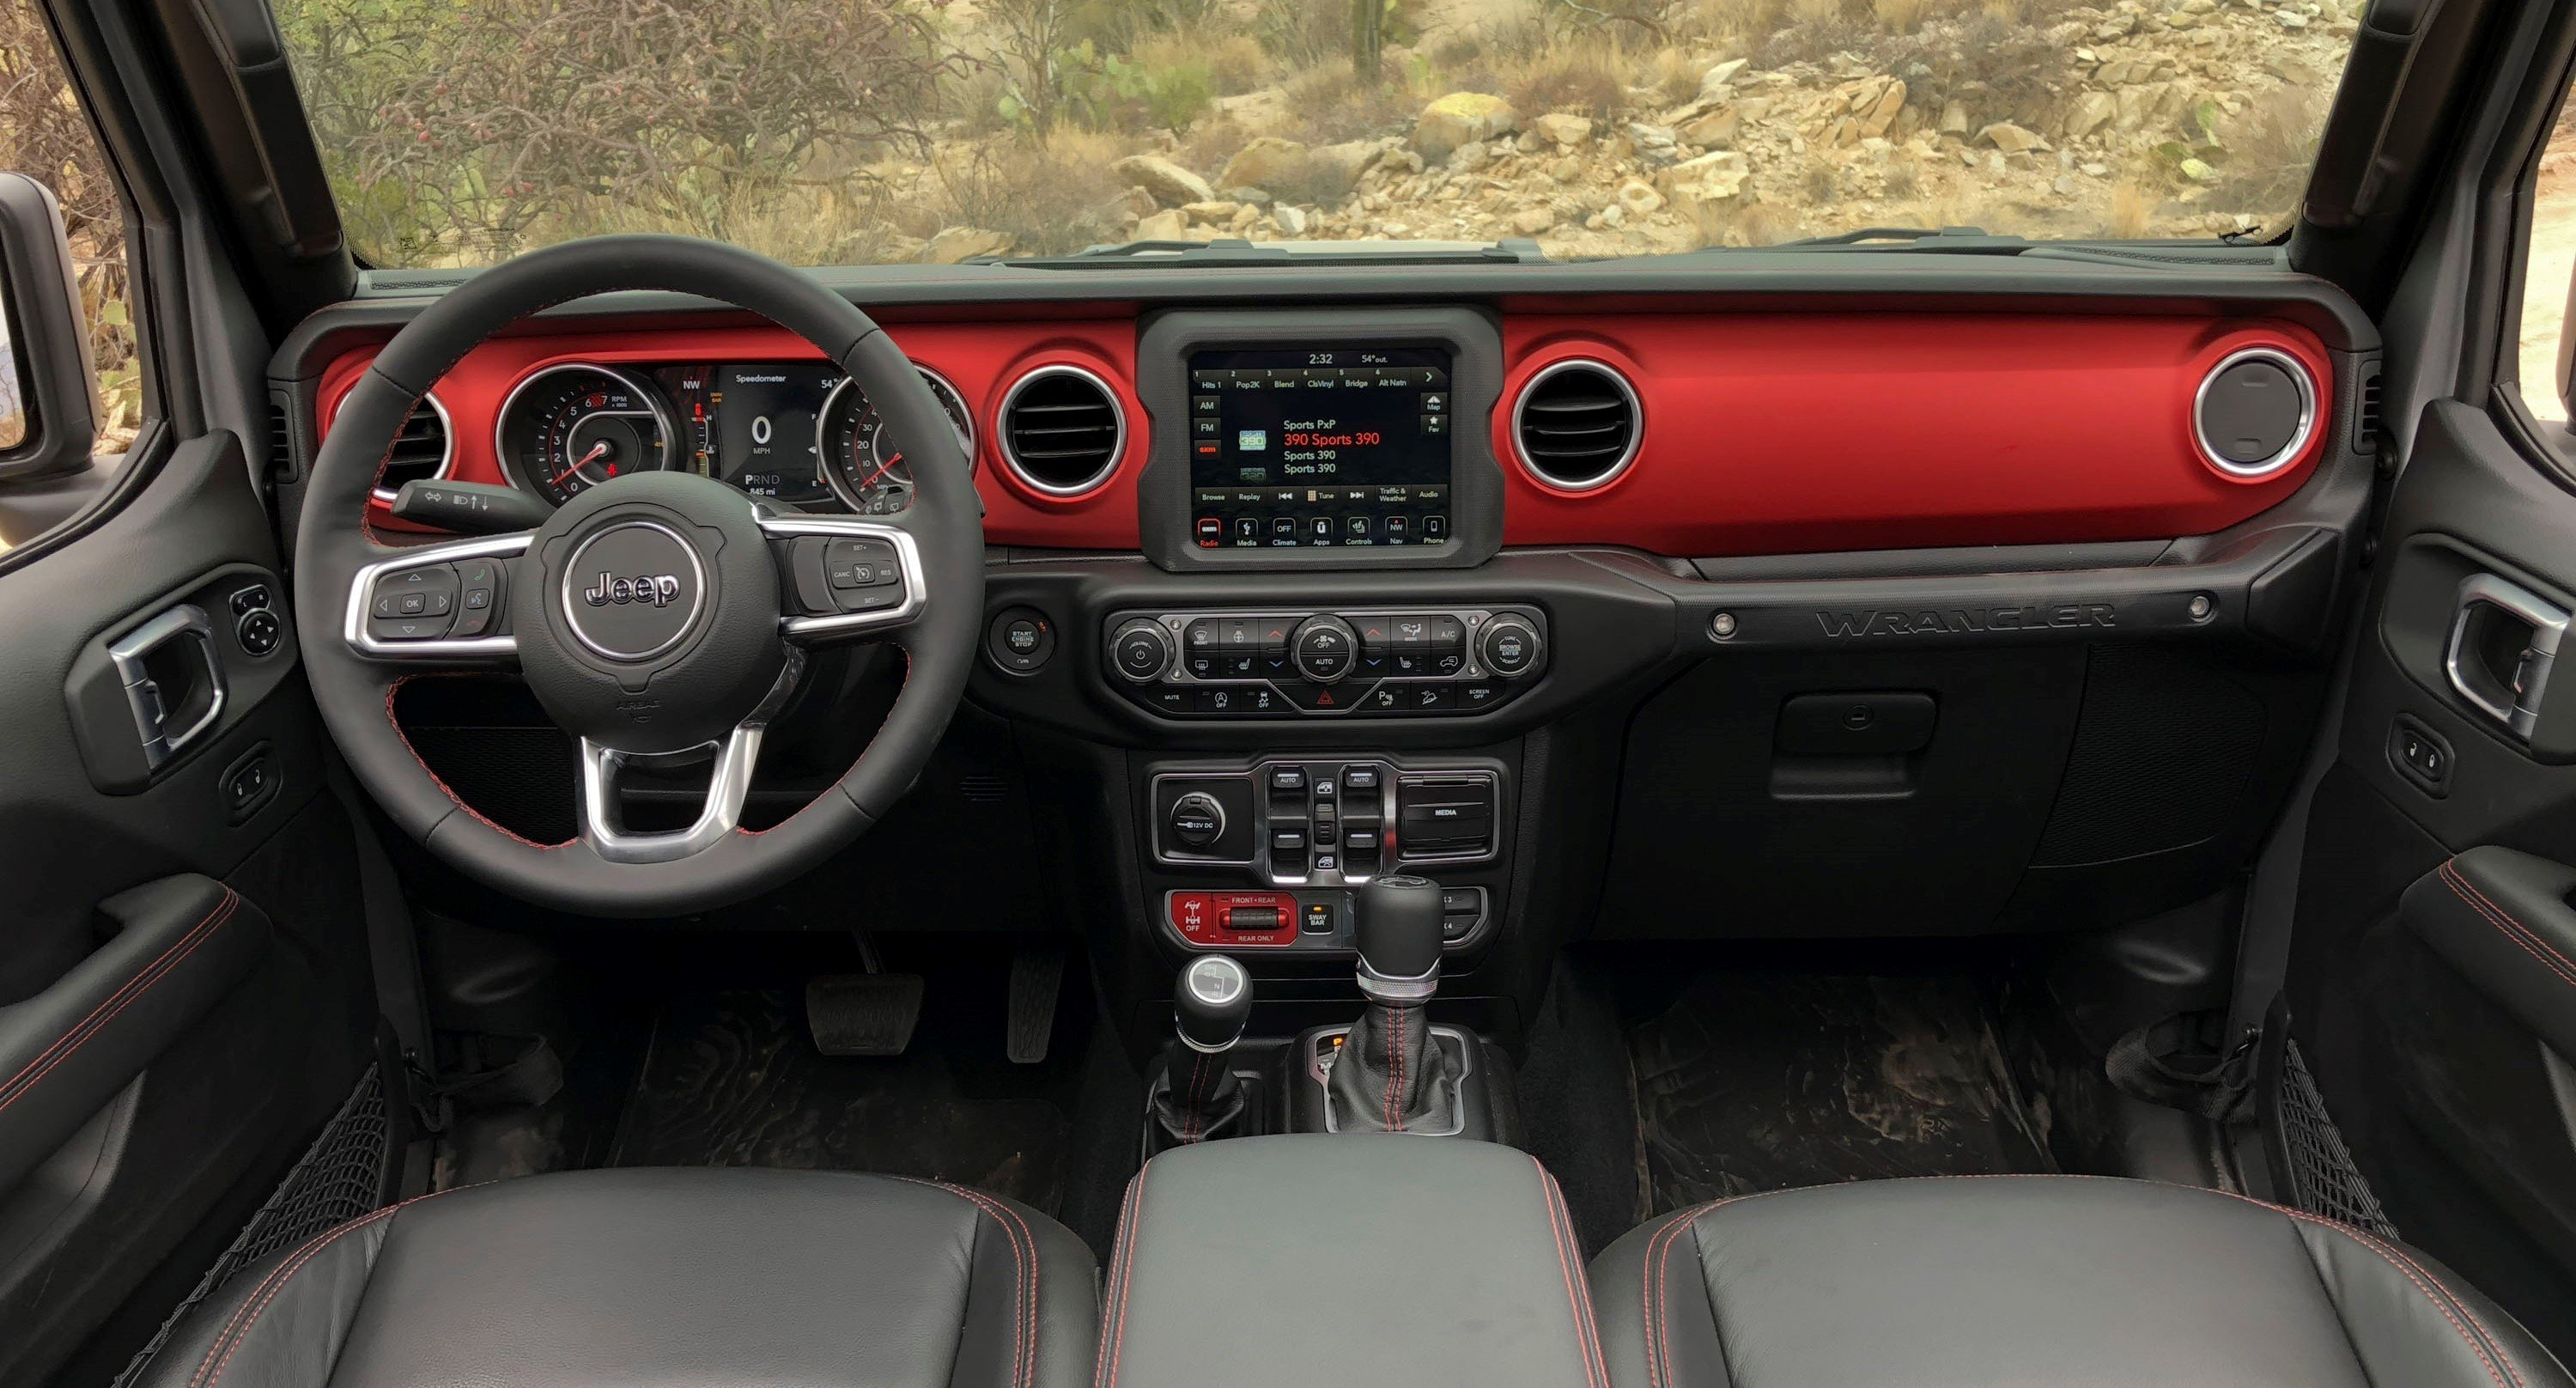 Jeep Wrangler 2018 Tuning >> A Detailed Look At the 2018 Jeep Wrangler's Dashboard – Move Ten Manual Shift